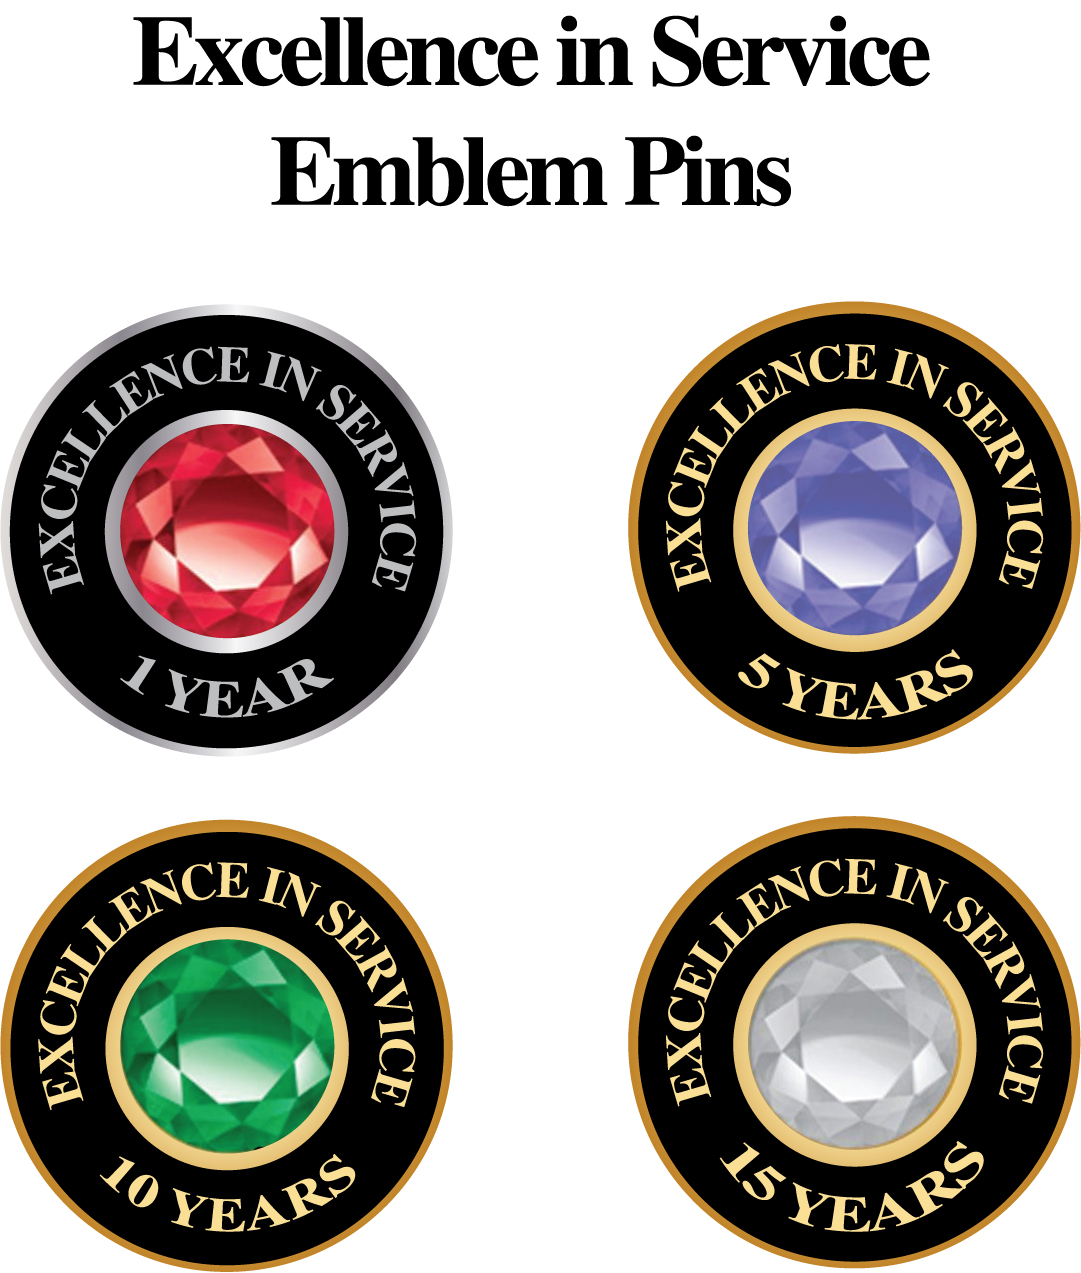 Years of Excellence Emblem Pin pins, stick pins, sticks, years, services, 5, 10, 15, 25, Emblem, Stone